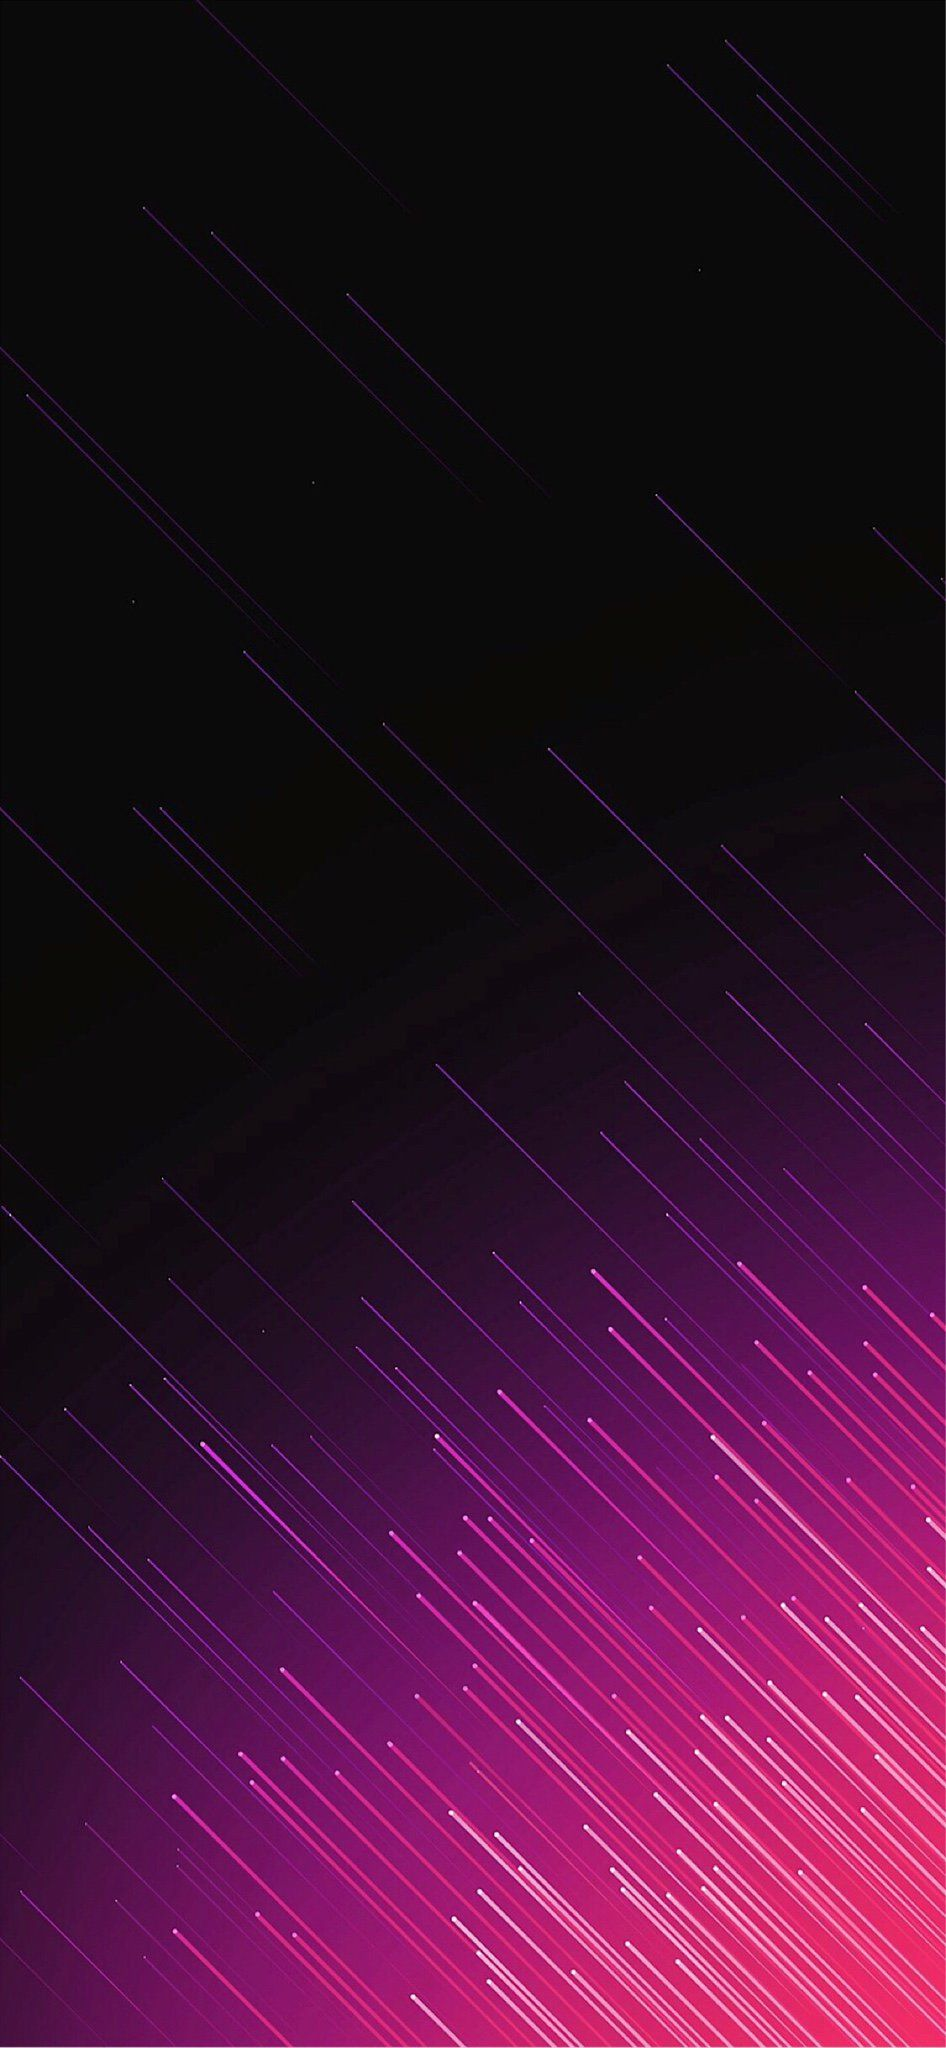 The Iphone X Wallpaper Thread Iphone Ipad Ipod Forums At